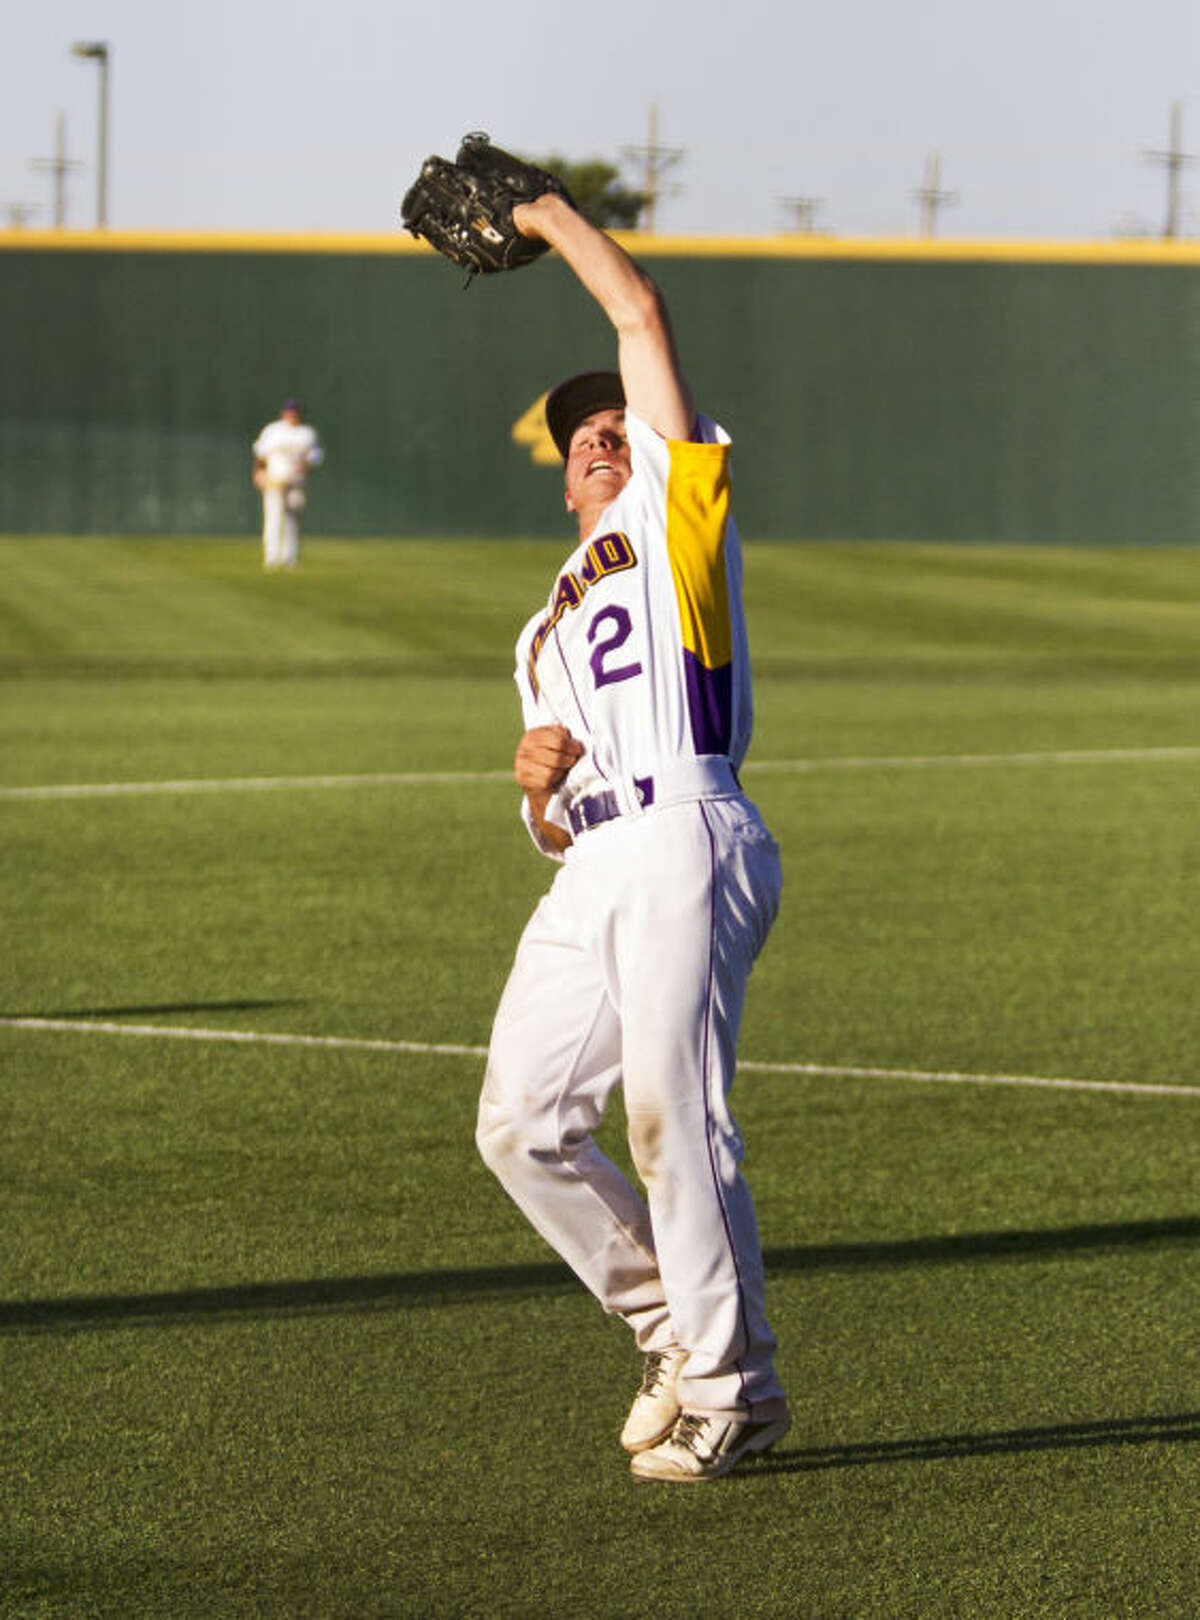 Midland pitcher Sean Grebeck catches a pop fly in the seventh inning during the Bulldogs' 9-5 victory against the Rebels in the UIL Baseball Area Championship on Friday at Hays Field in Lubbock.